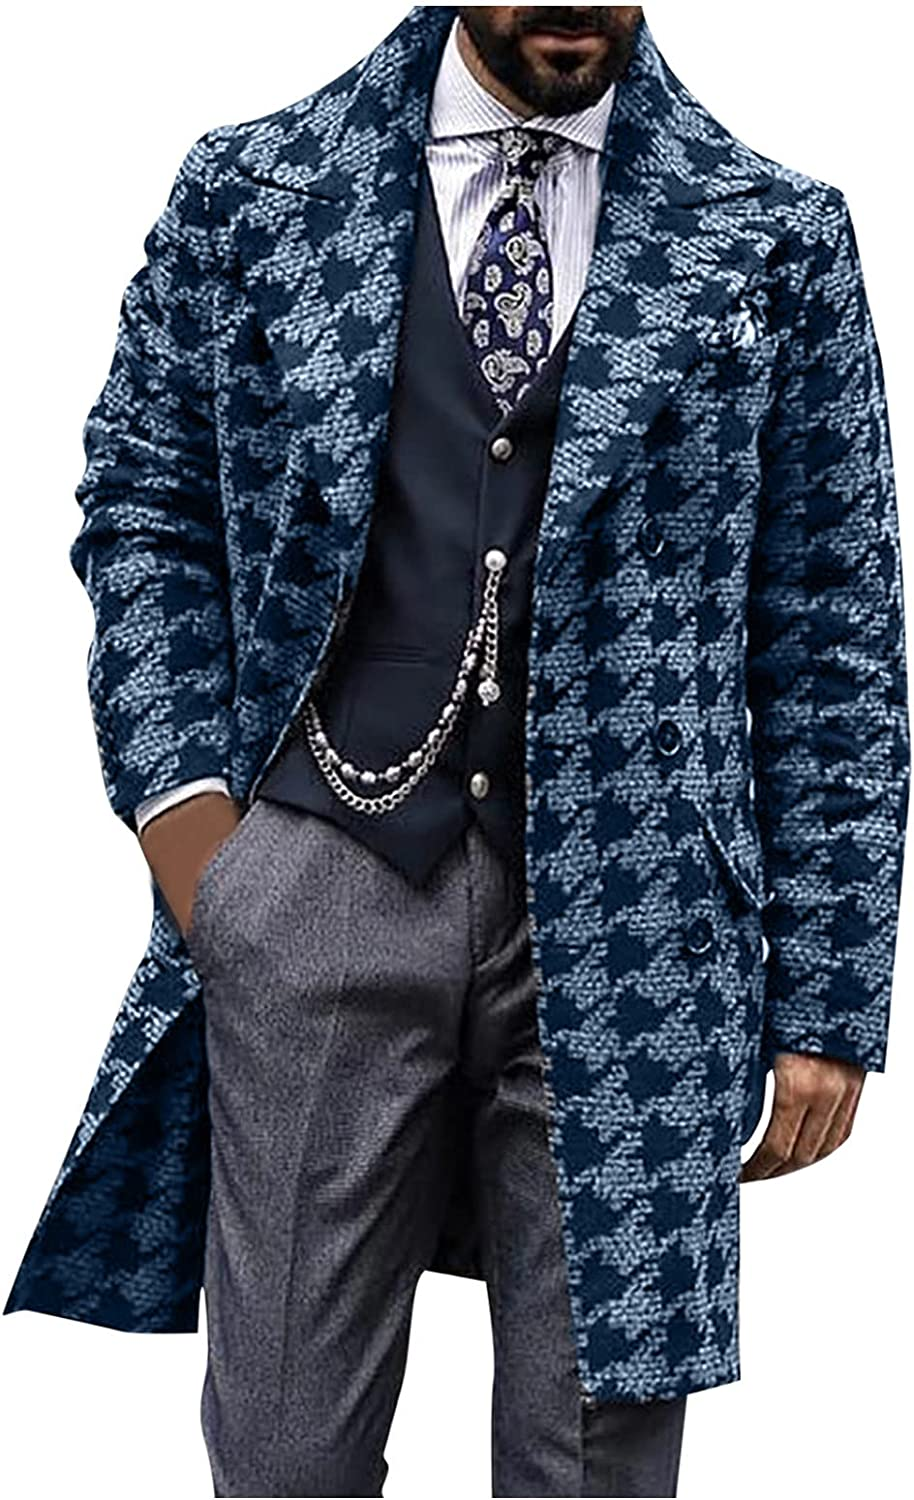 Huangse Men's 2021 Fashion Houndstooth Notched Lapel Double Breasted Trench Coat Autumn Winter Casual Plaid Jacket Peacoat